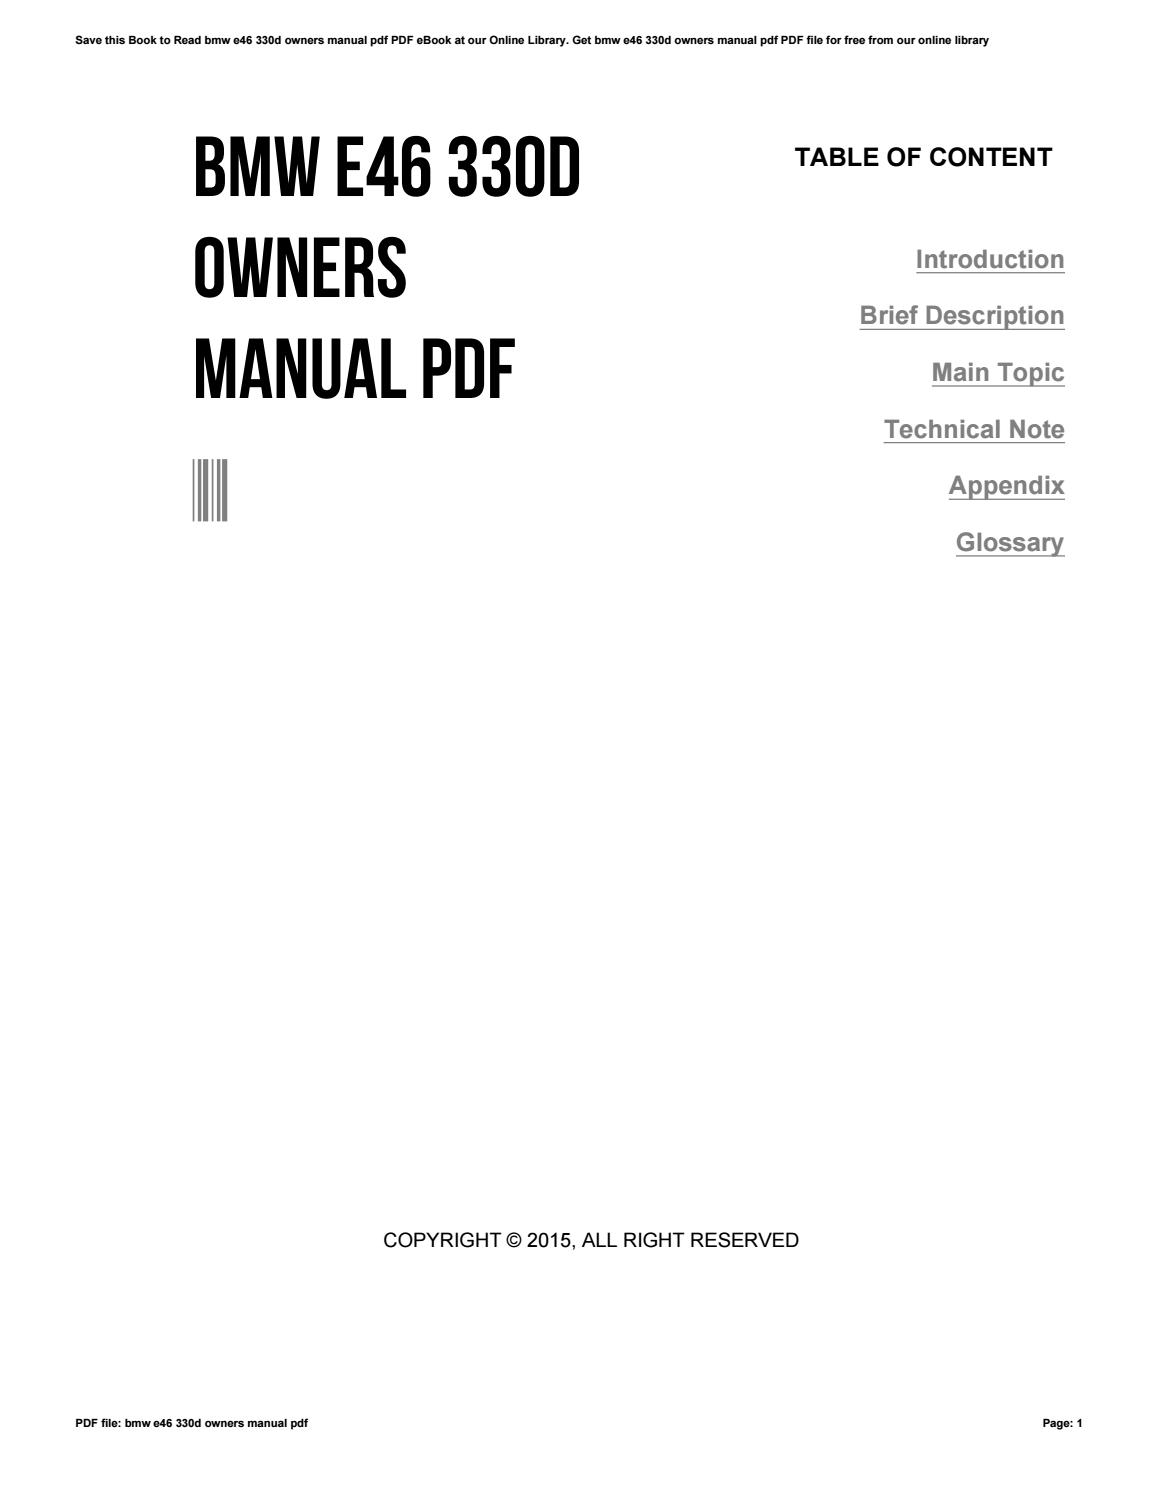 Bmw e46 330d owners manual pdf by p8676 - issuu